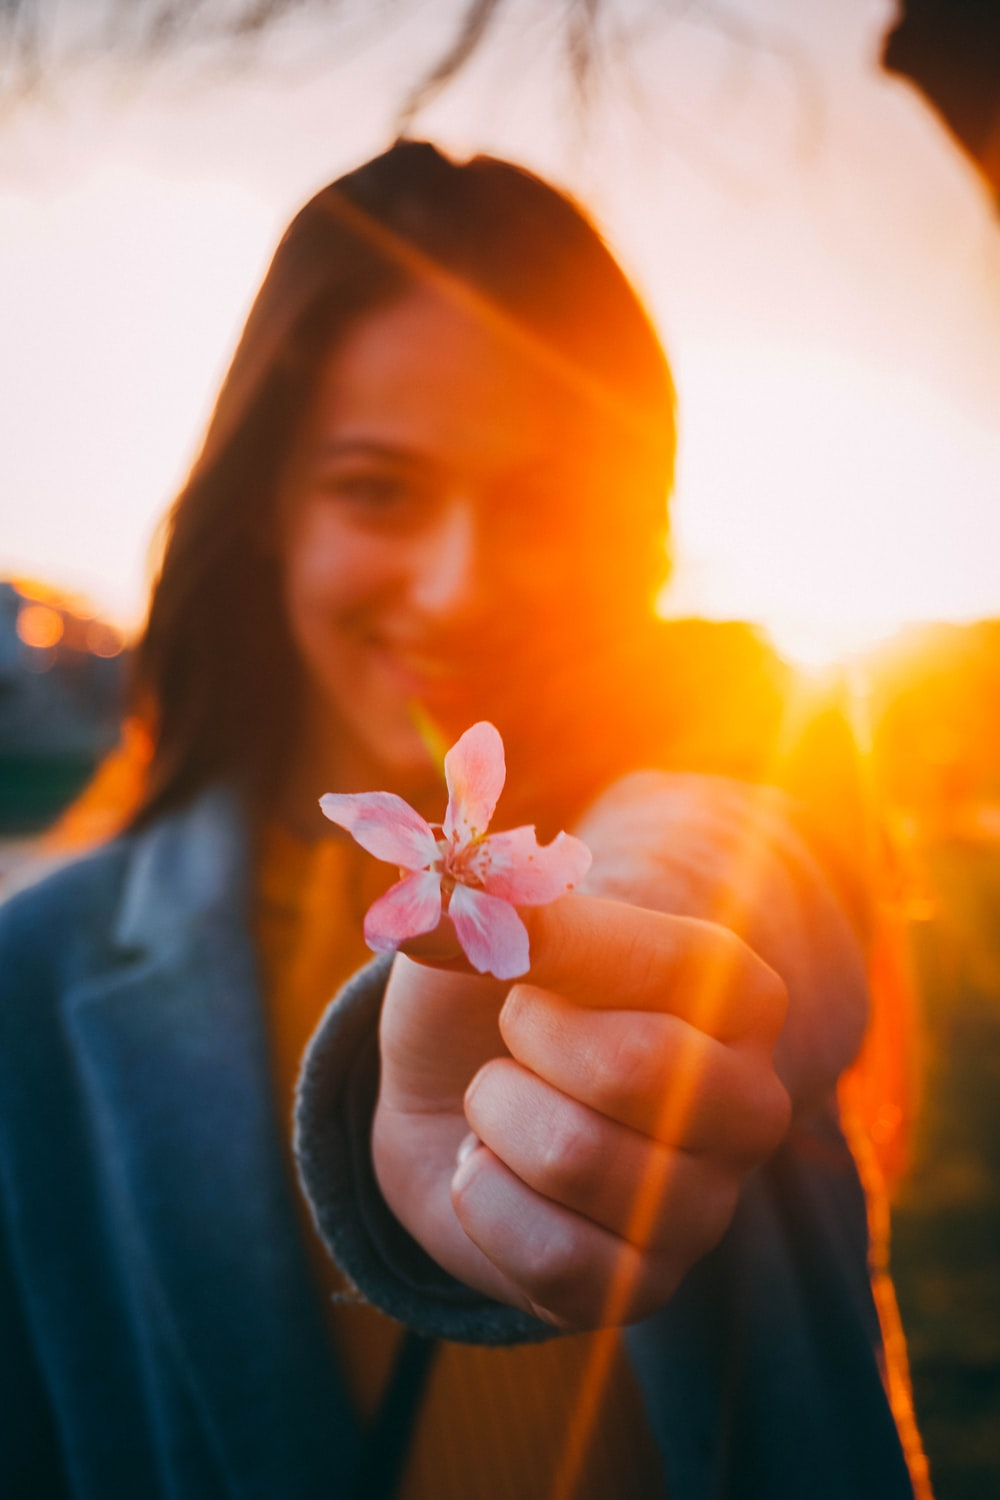 woman holding a pink flower at sunset